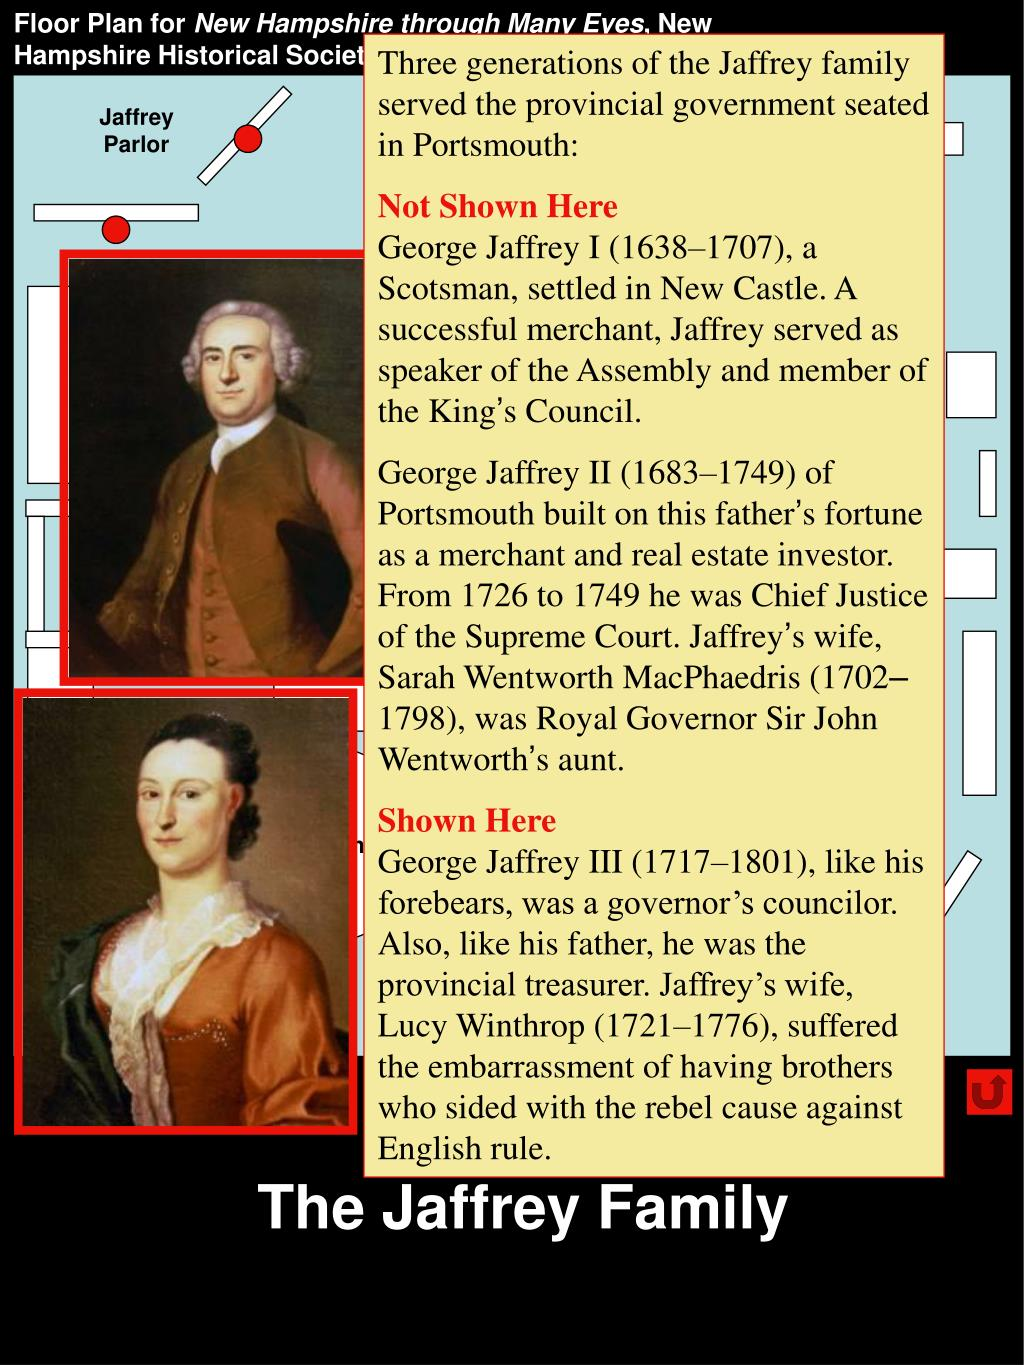 Three generations of the Jaffrey family served the provincial government seated in Portsmouth: